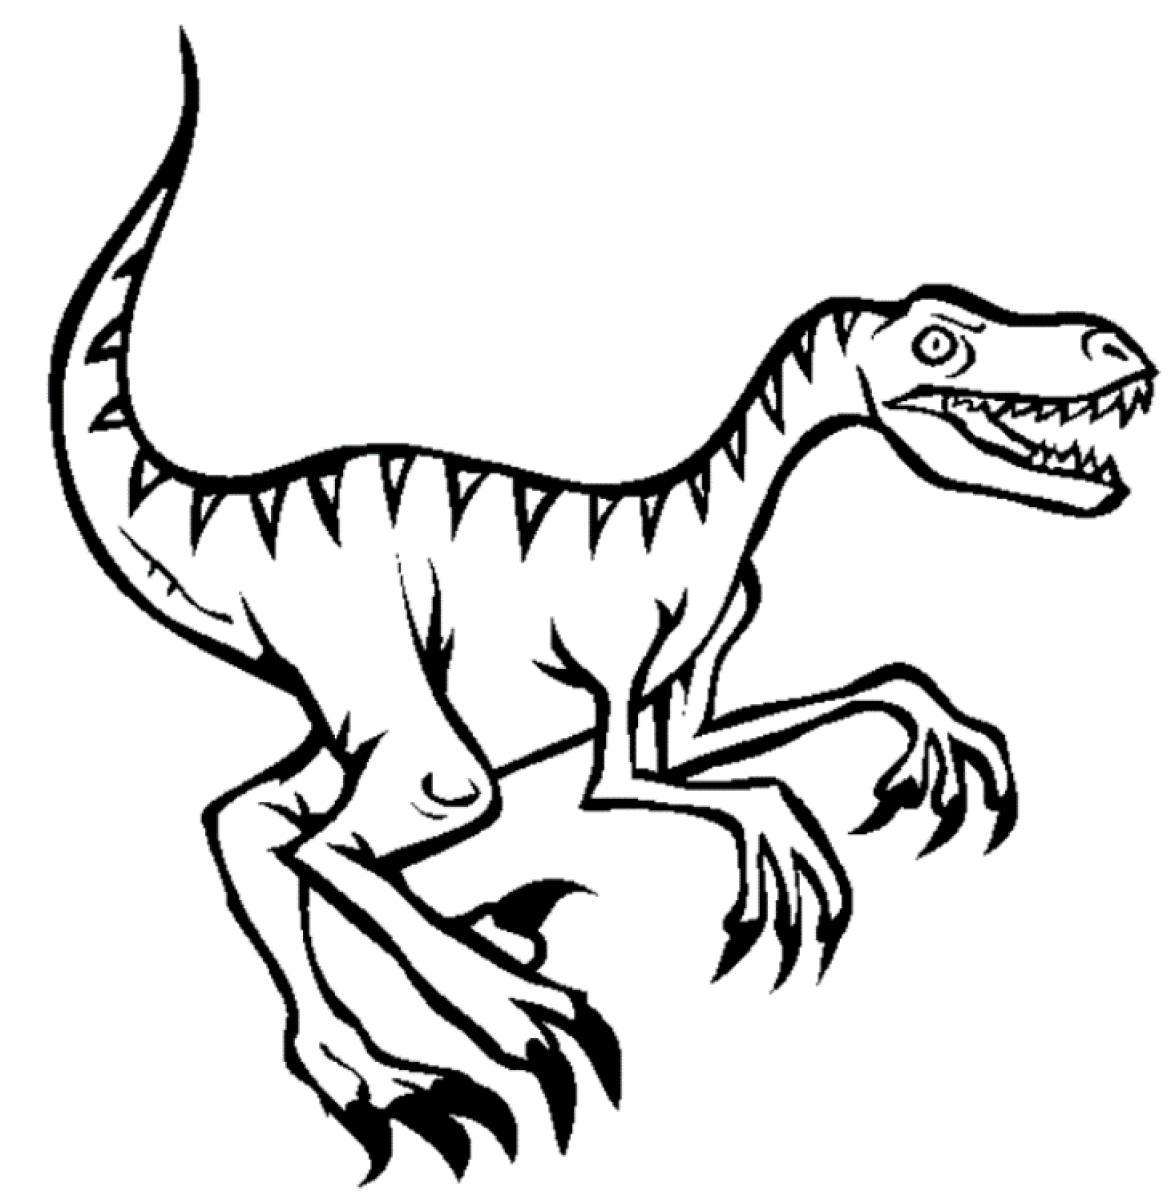 amazing coloring pages - free printable dinosaur coloring pages